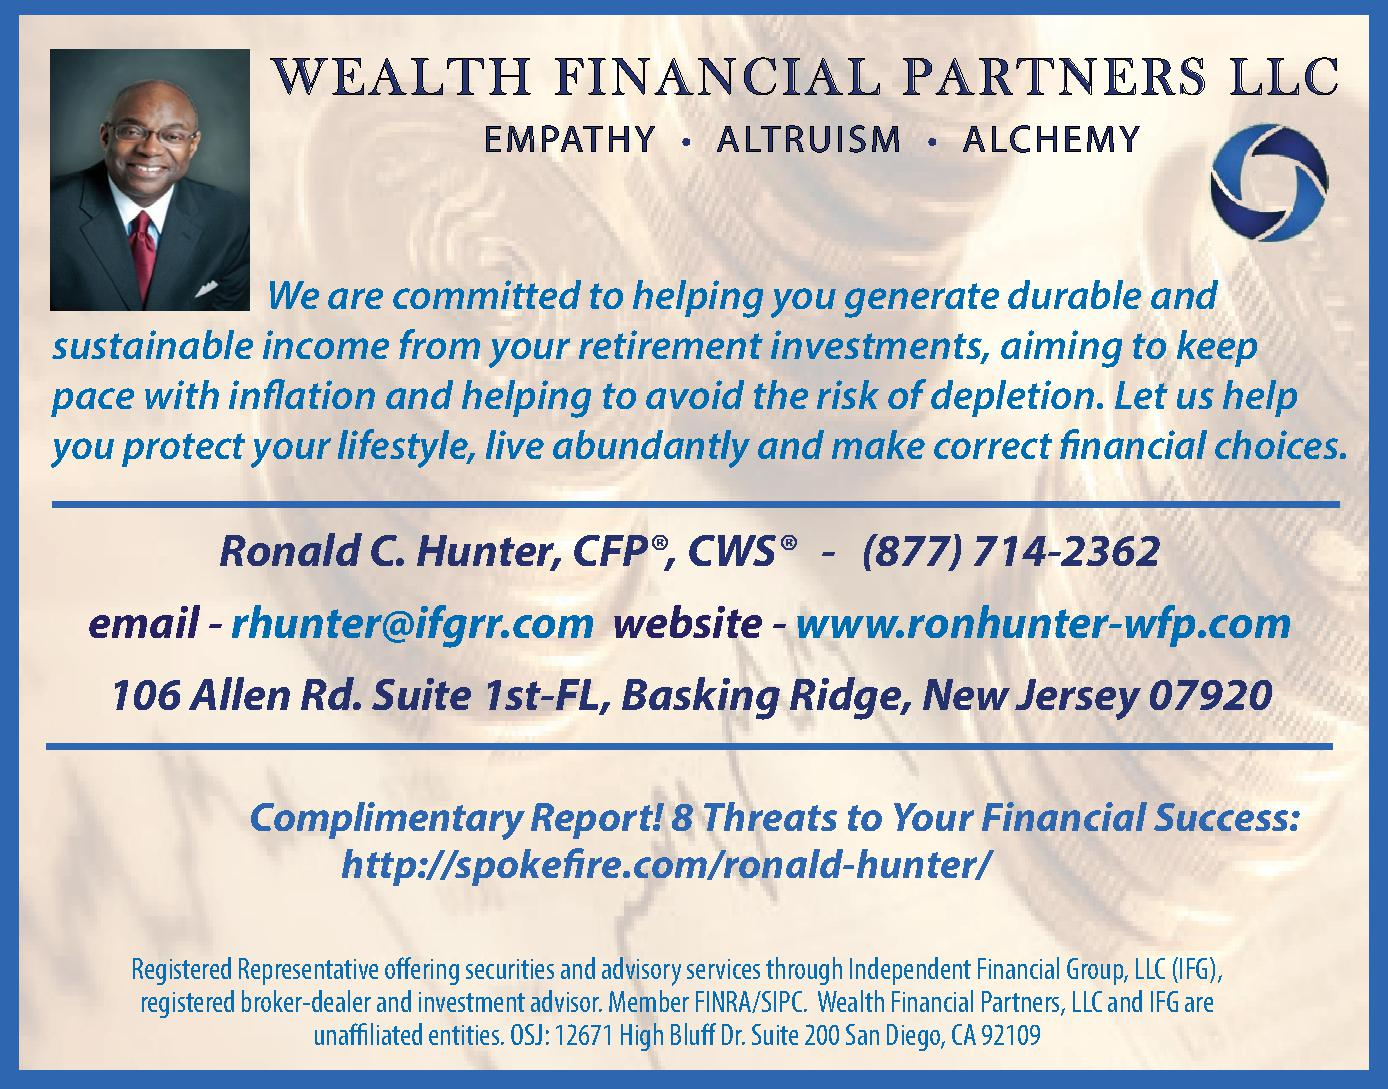 Wealth Financial Partners LLC